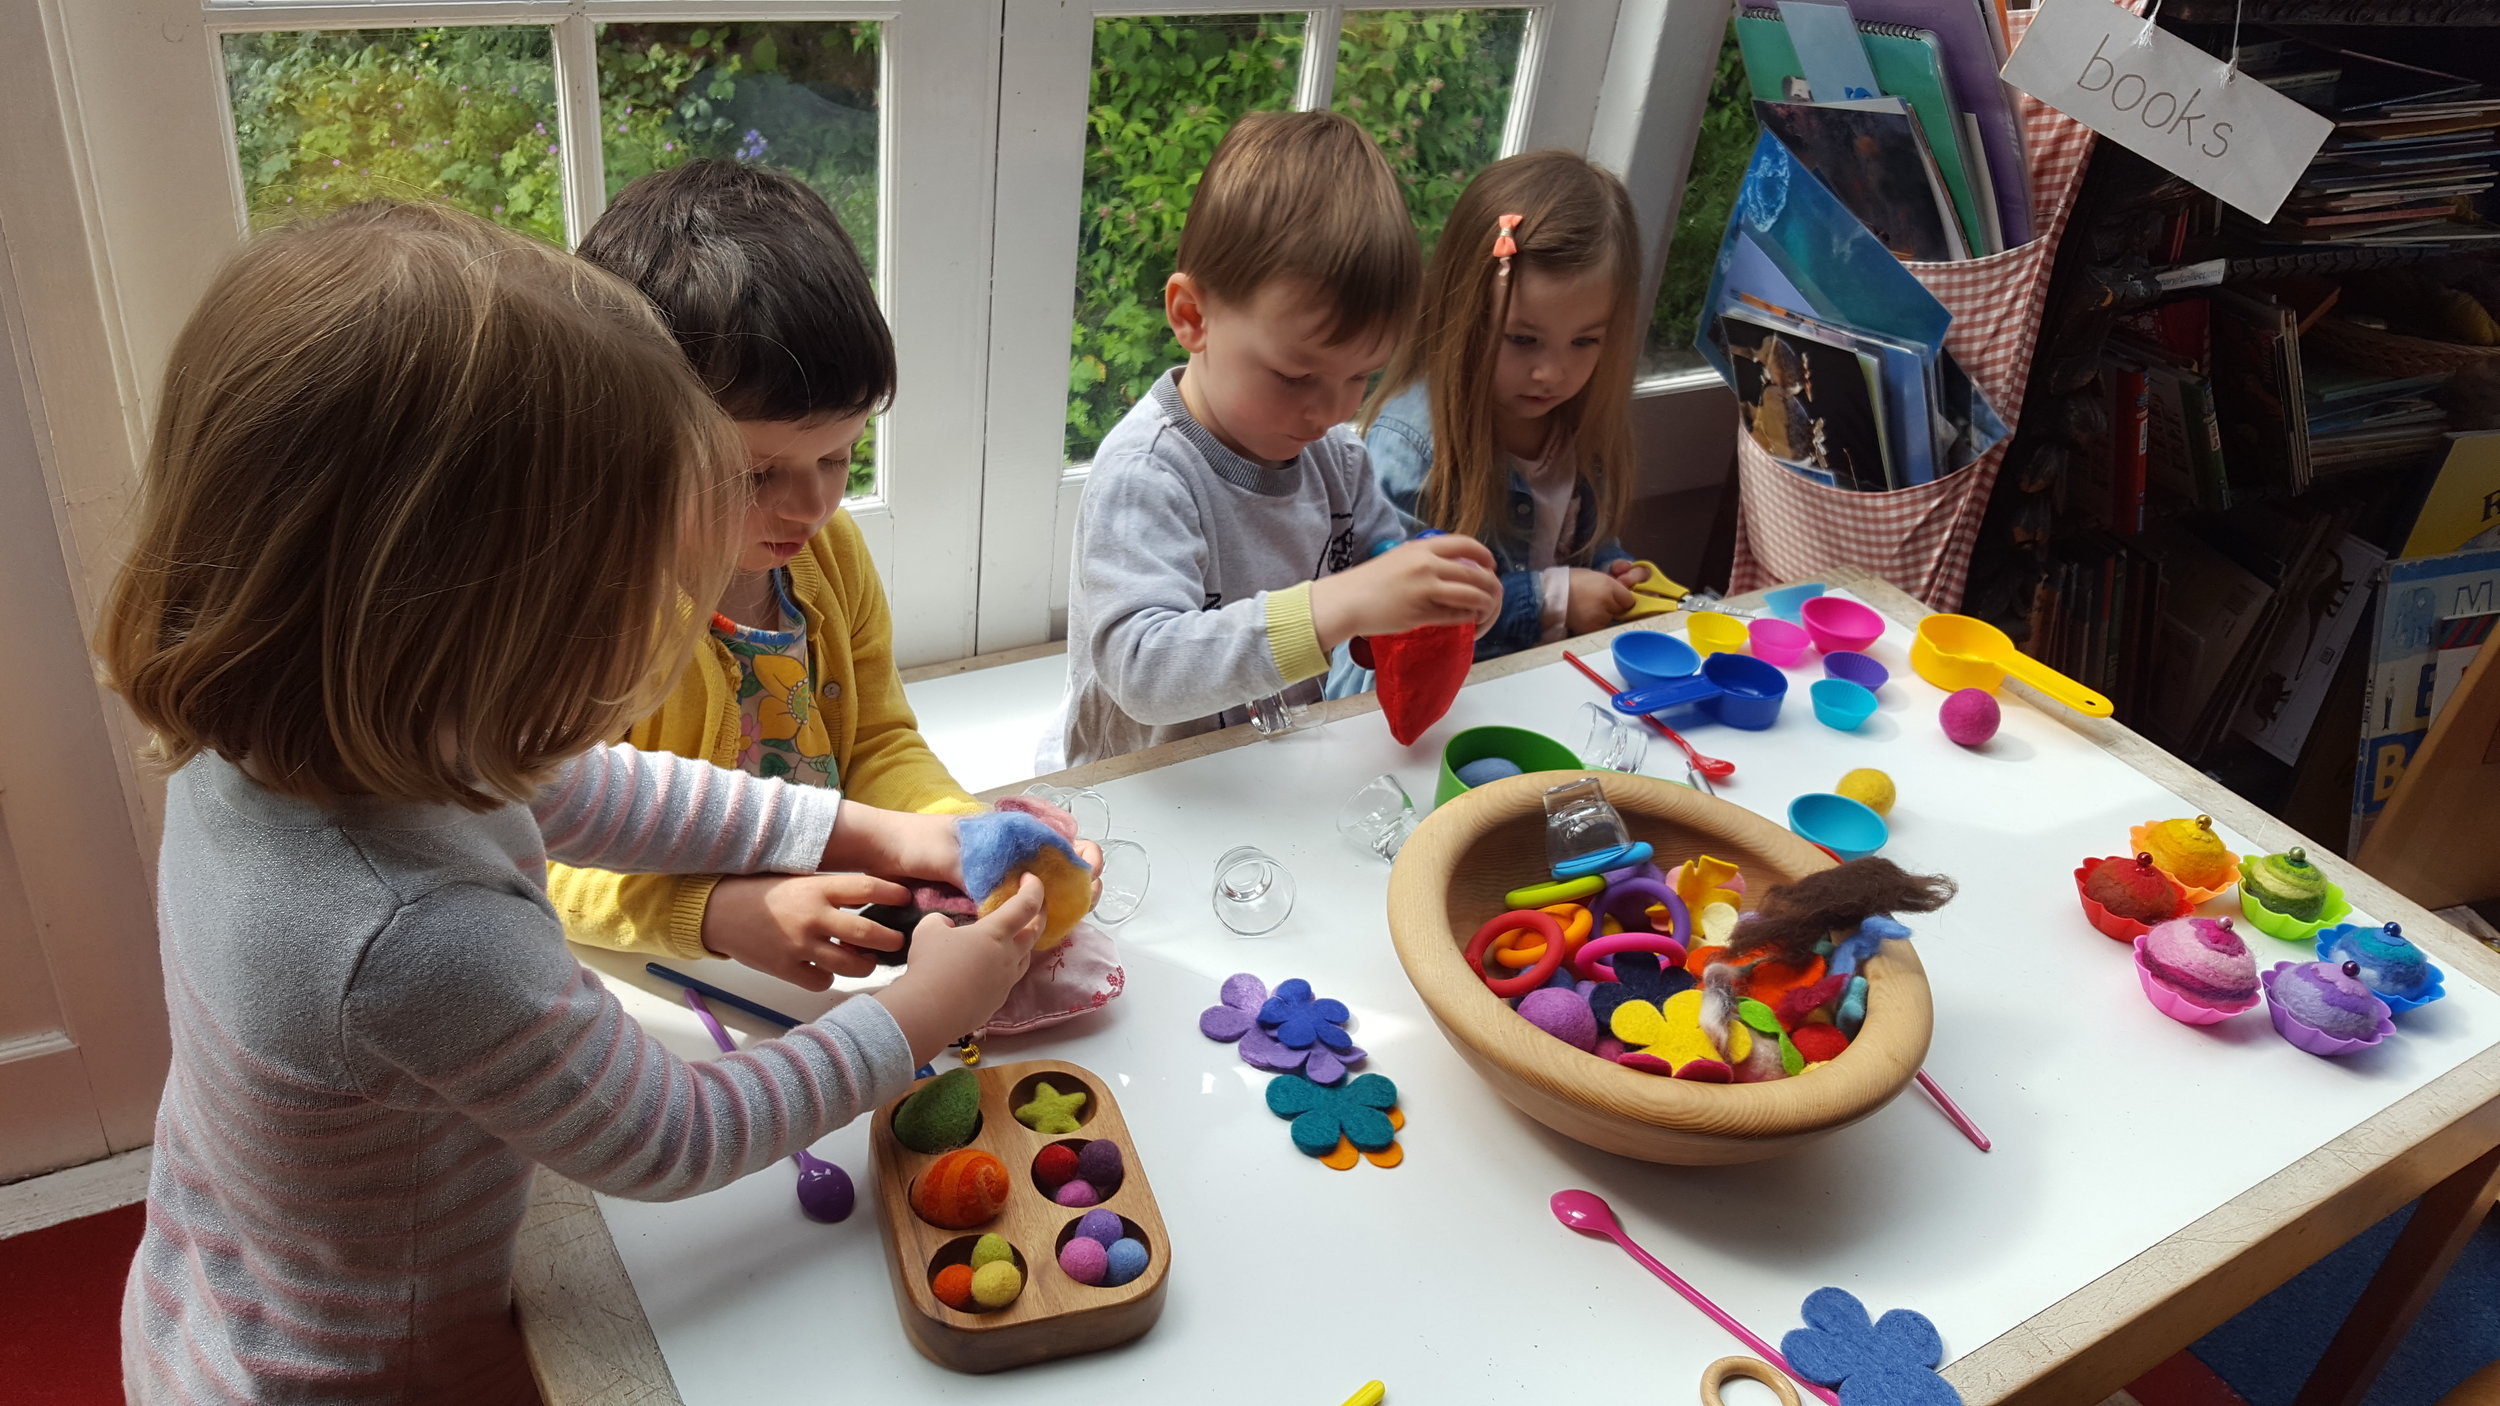 Children sort, count and match with lovely sensory wool balls and felted cakes